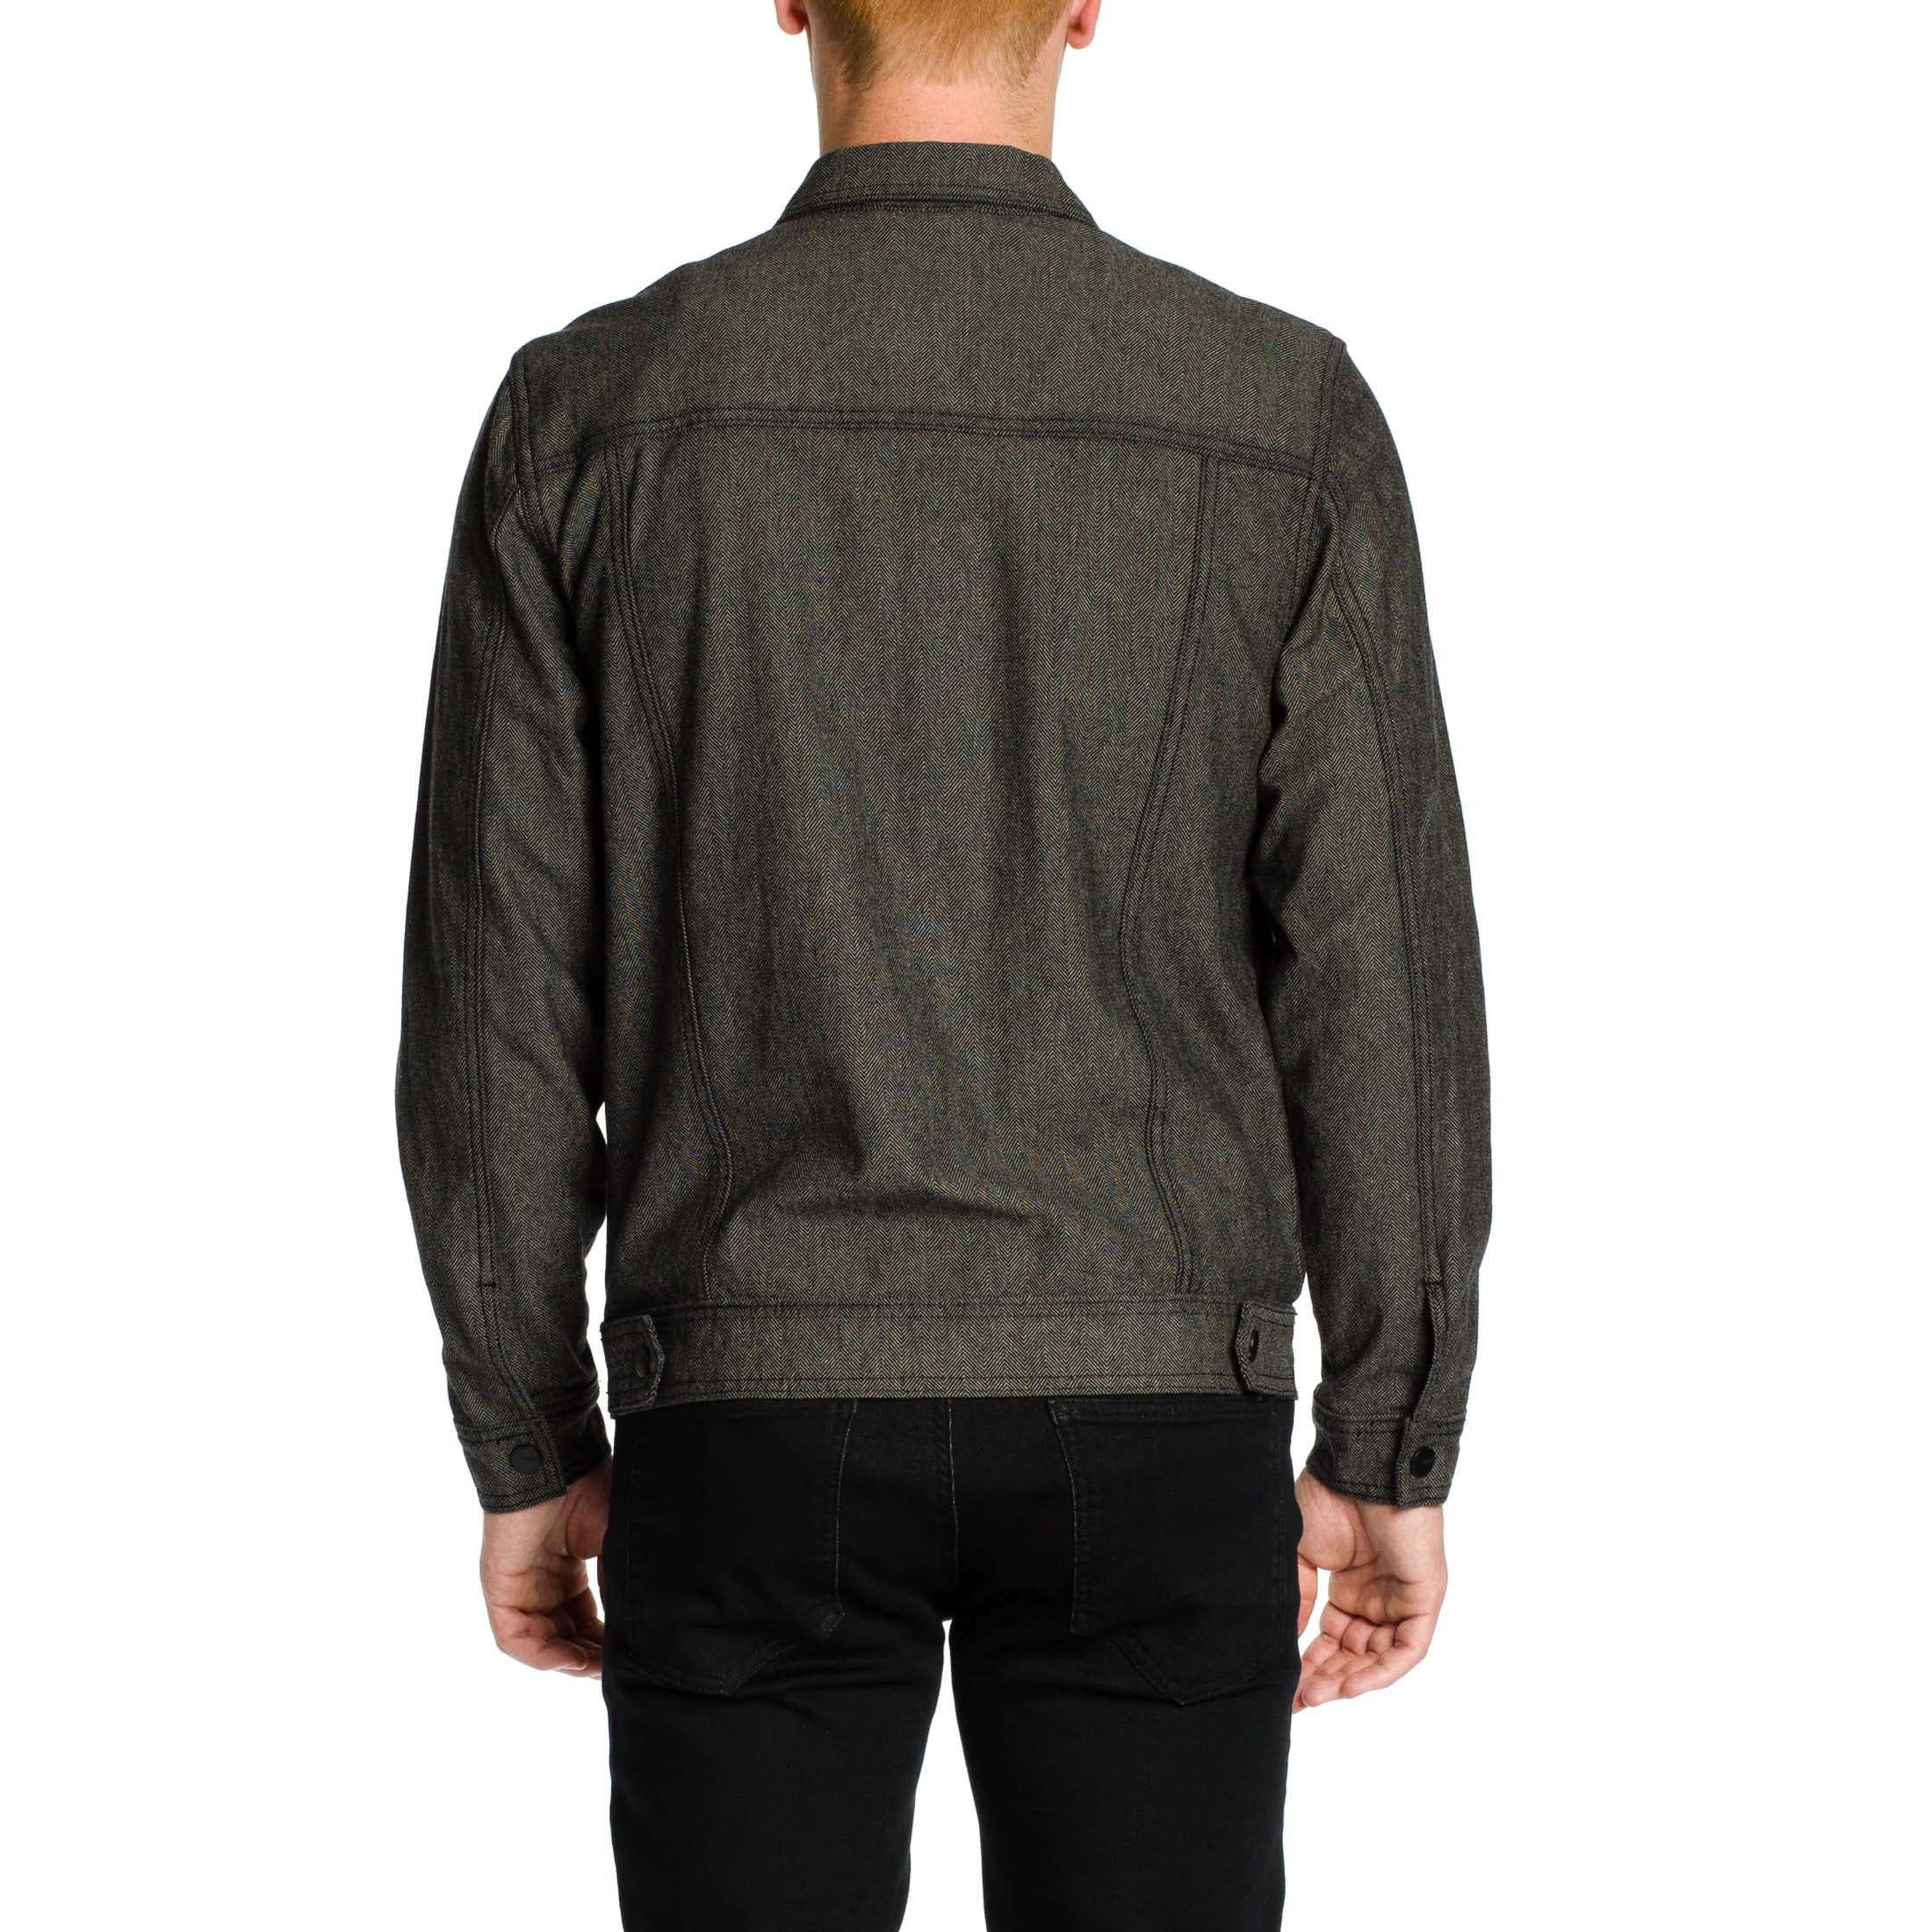 Now Denim Herringbone Jacket - Black - Ezekiel Clothing